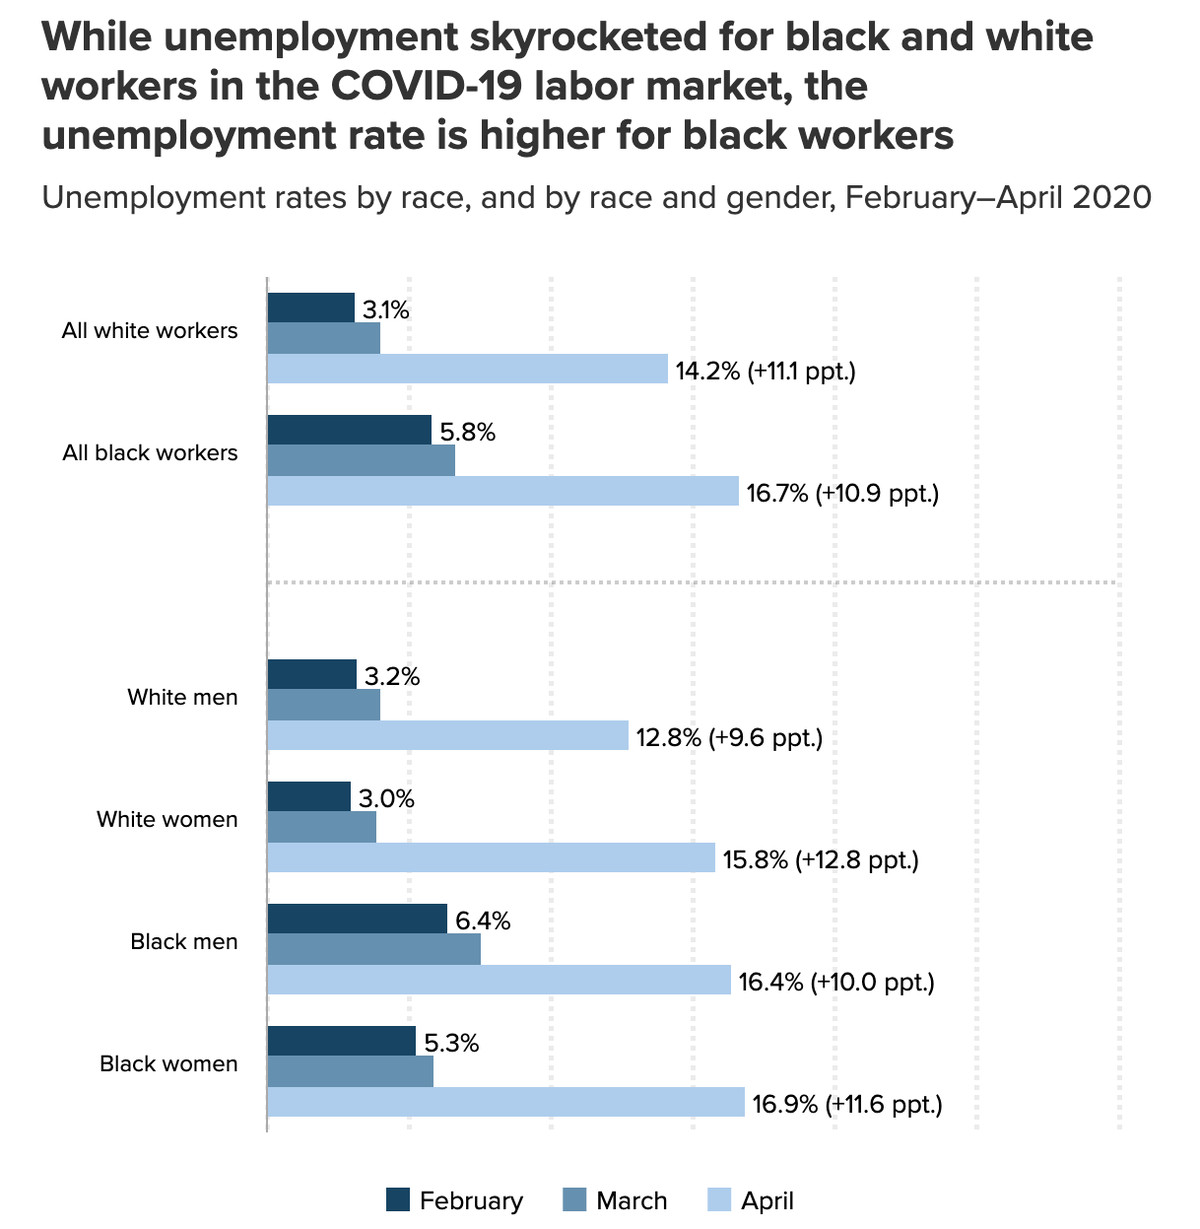 A chart showing the unemployment rate for black workers vs. white workers, also broken down by gender.